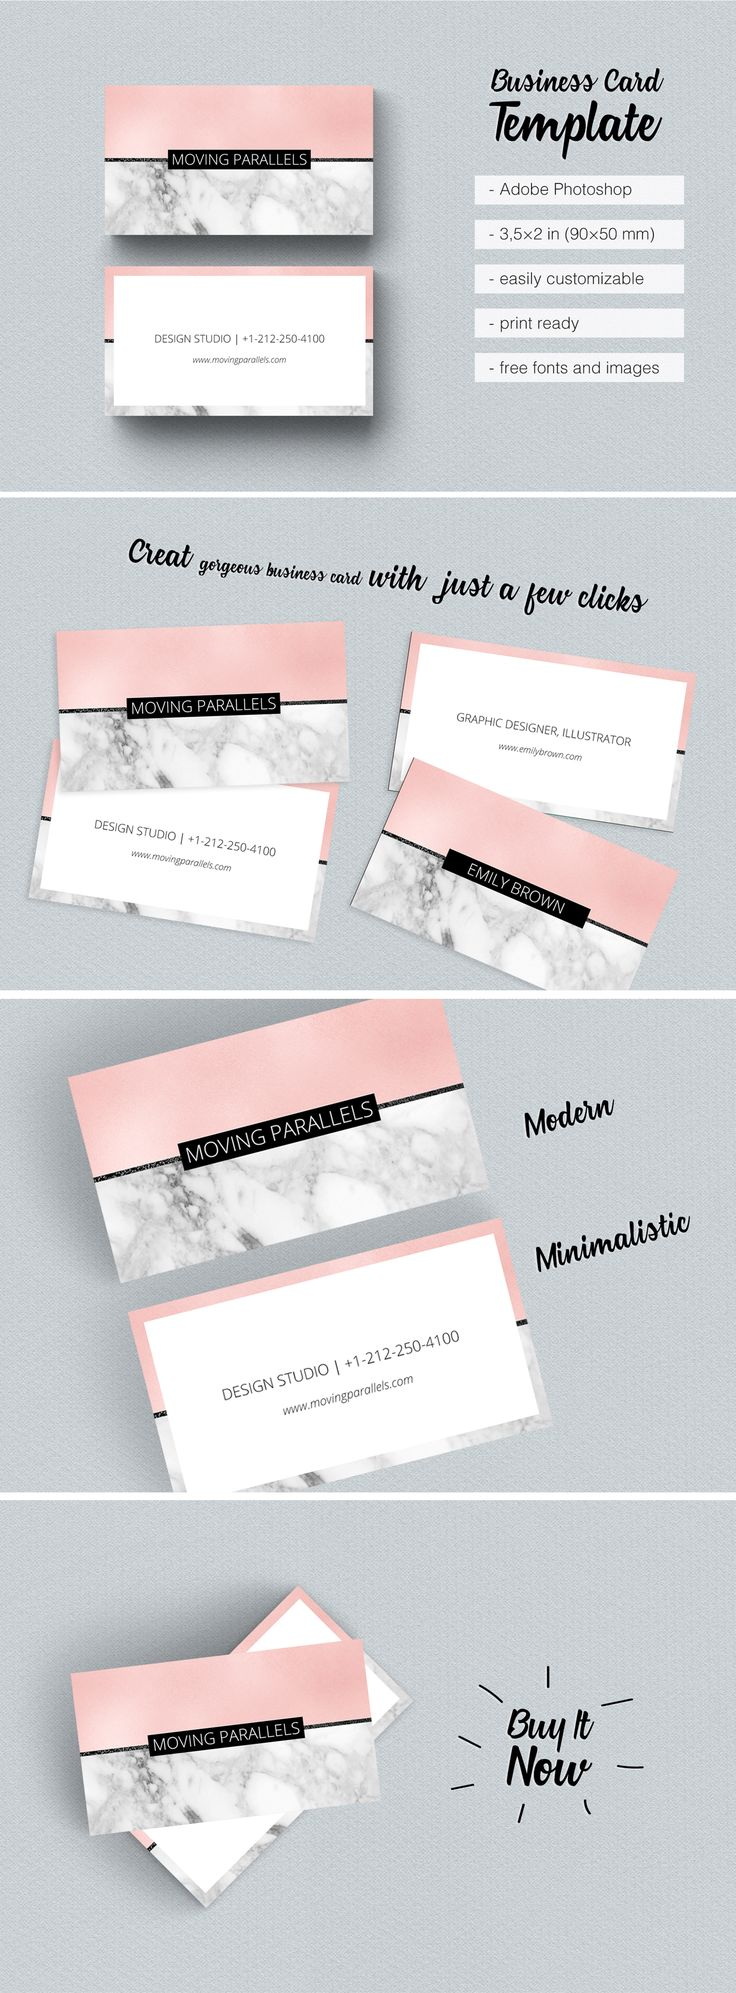 $8 Rose Gold White Black Marble Glitter Foil Horizontal Popular Business Card Template Classy, sophisticated and elegant, minimalist  visiting card, looks fresh and clean. Modern and clever design mixes several materials: rose metal puregold foil pattern, white and black marble and silver, copper, black glitter. Use it for corporate personal identity, name cards, professional office branding, marketing, calling cards, launches, events art, useful invites. For sale low price.